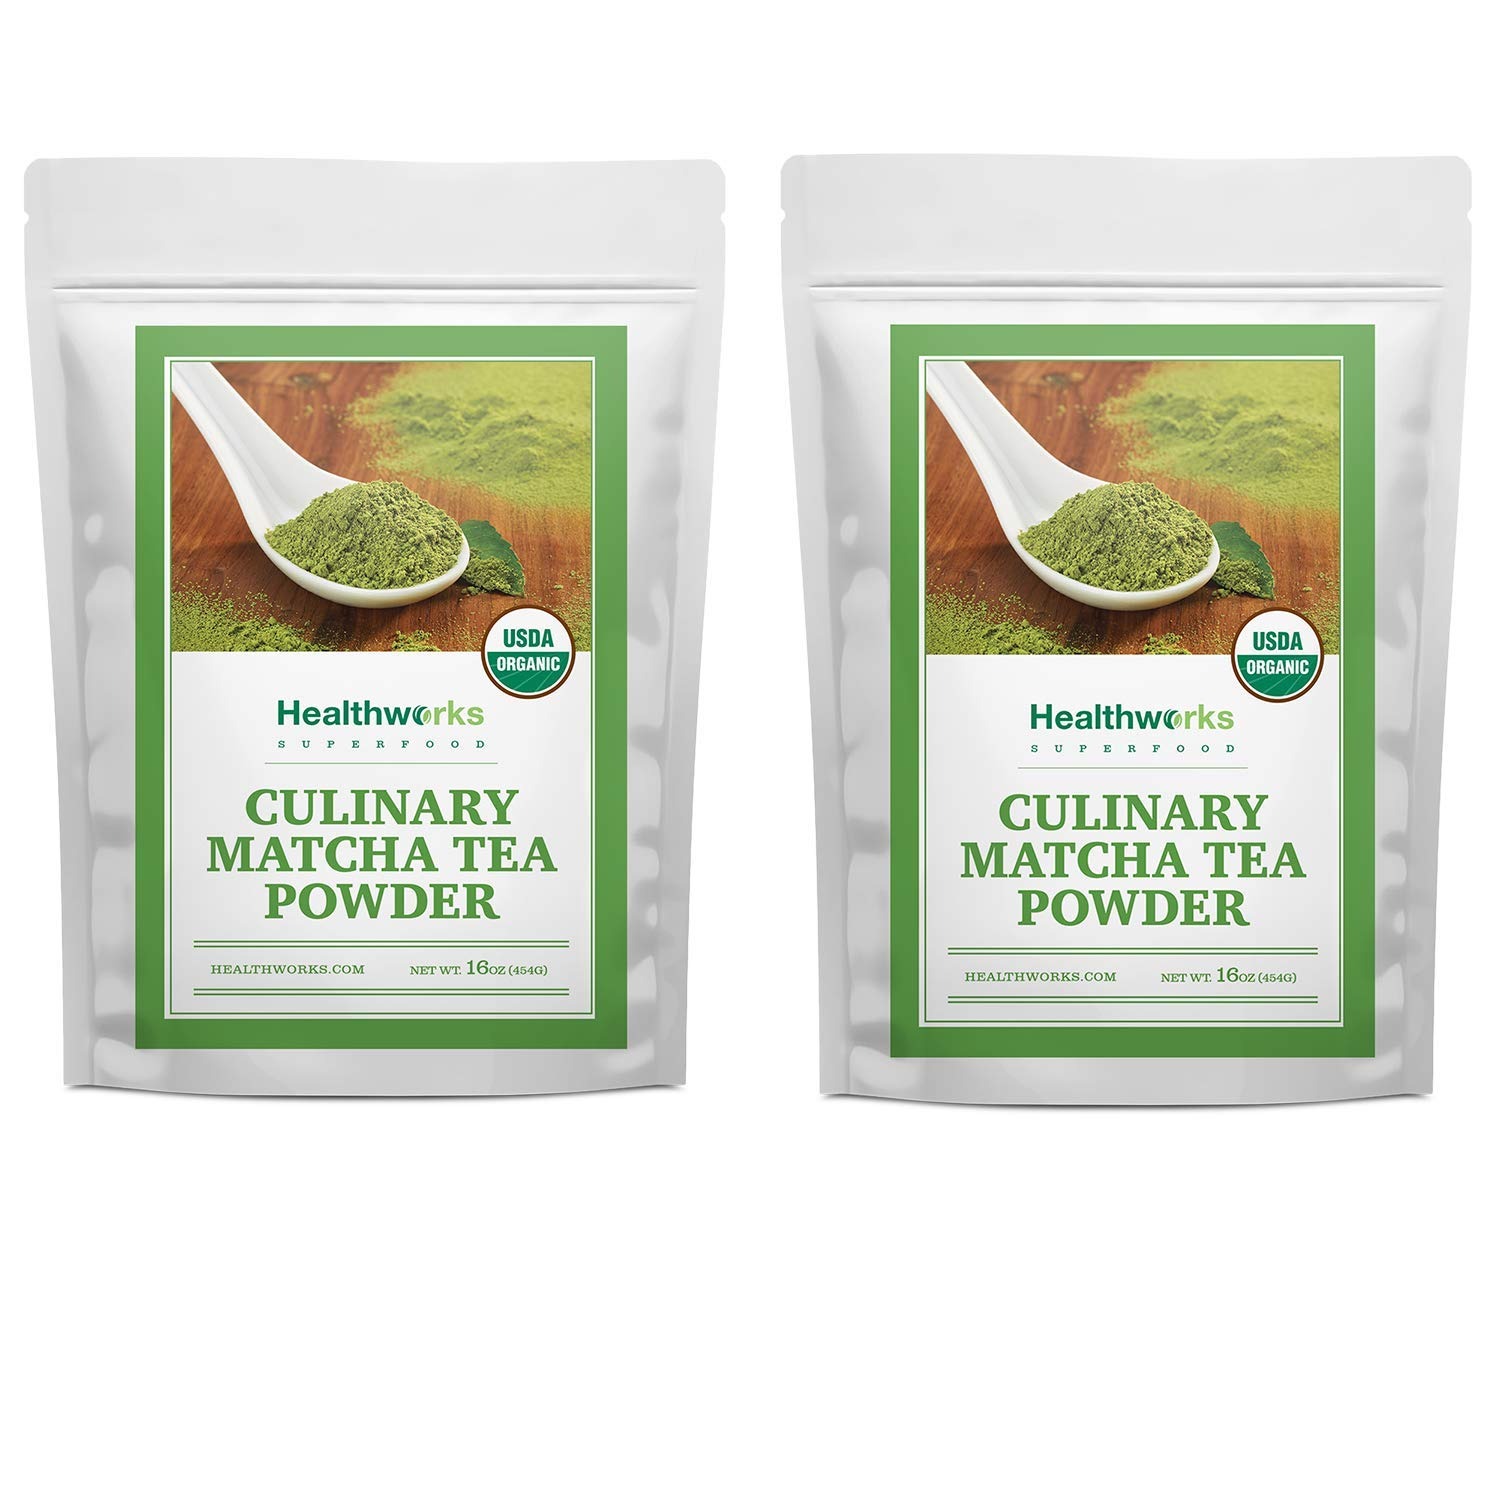 Healthworks Matcha Green Tea Powder Unsweetened (32 Ounce / 2 Pound) (2 x 1 Pound Bags) | Pure Certified Organic Premium Culinary Grade Extract | Keto, Vegan & Non-GMO | Smoothies & Lattes by Healthworks